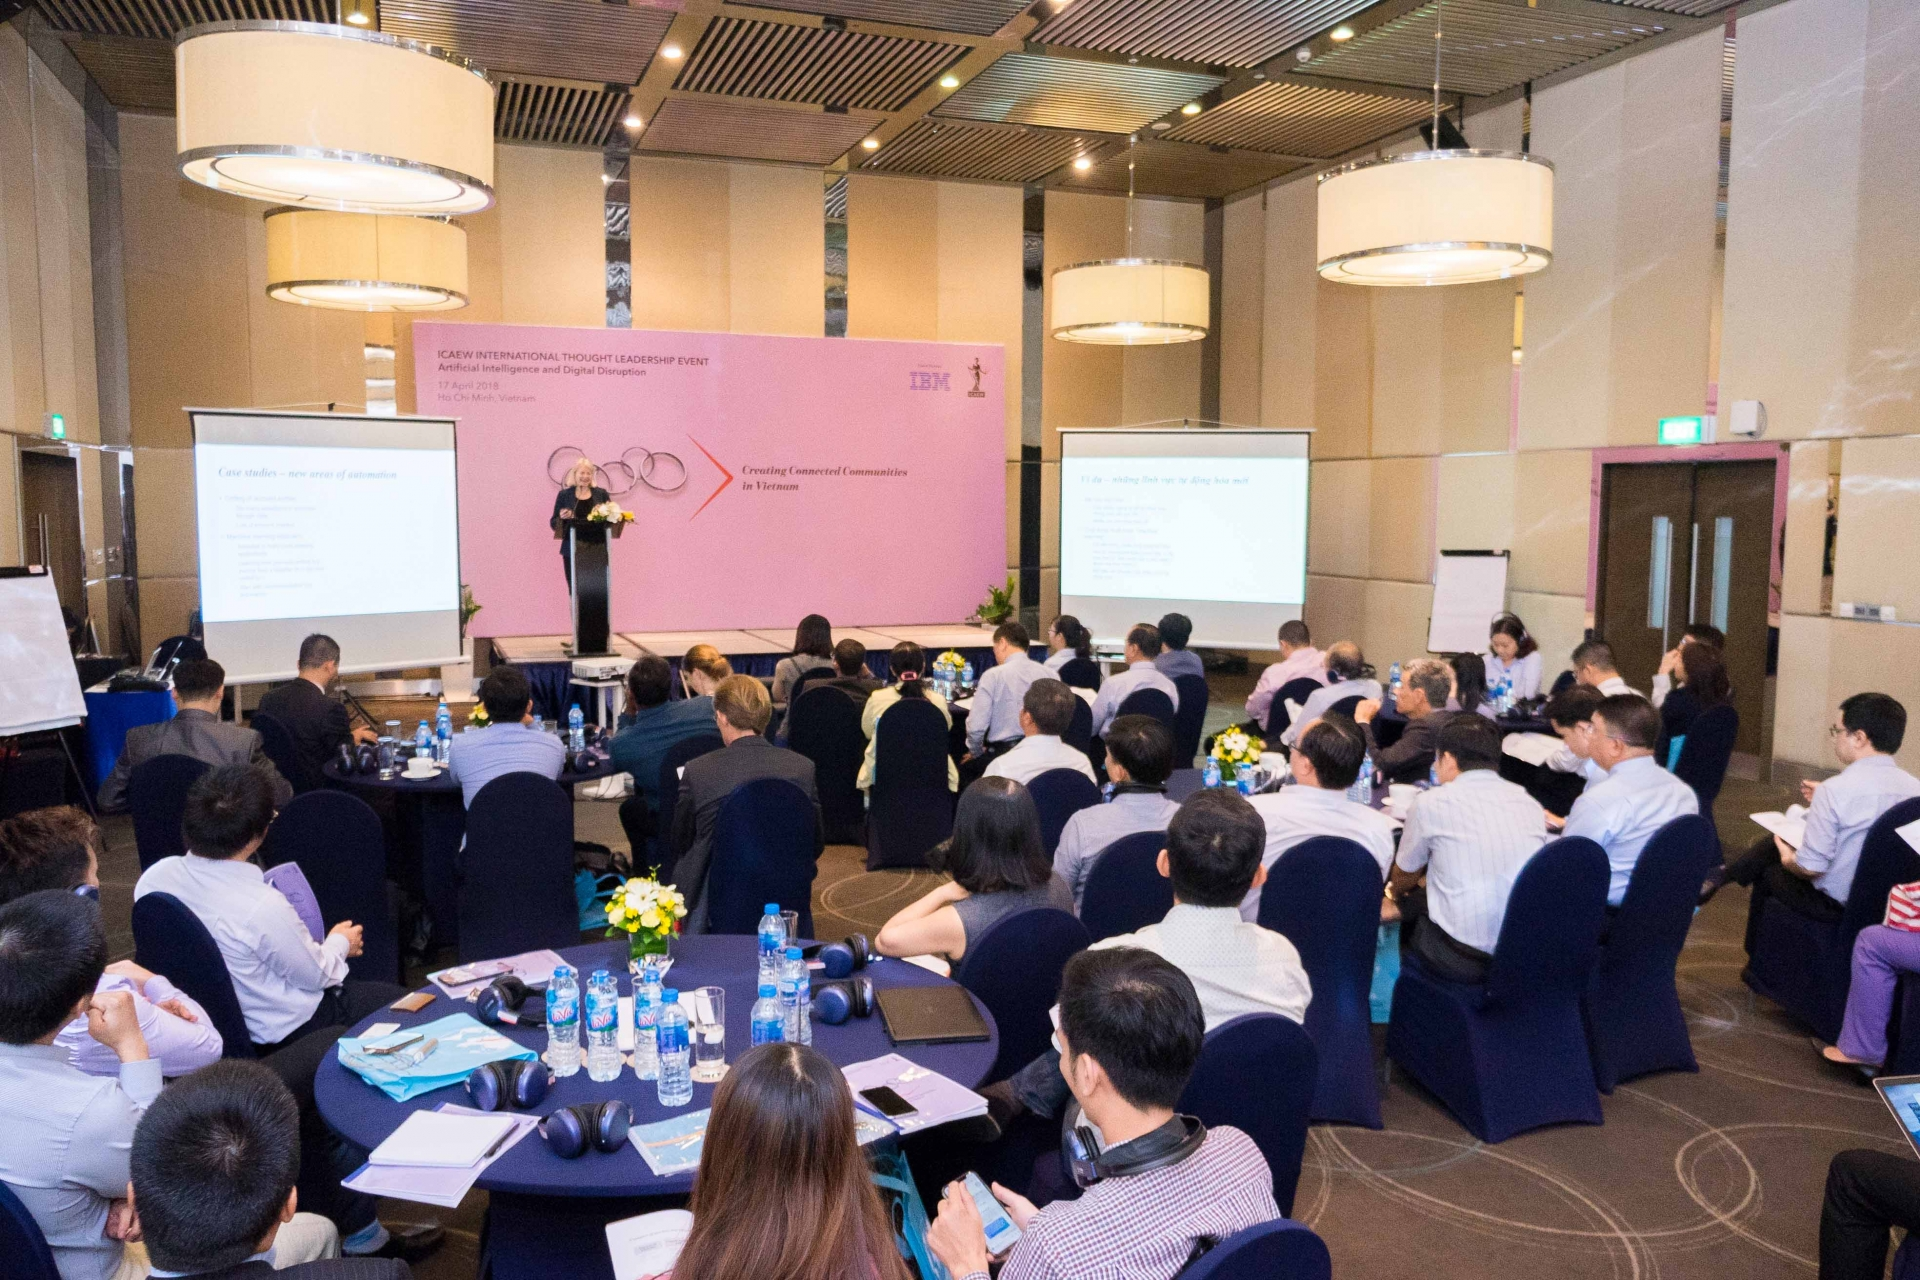 AI and Big Data at ICAEW 2018 Regional Thought Leadership Roadshow